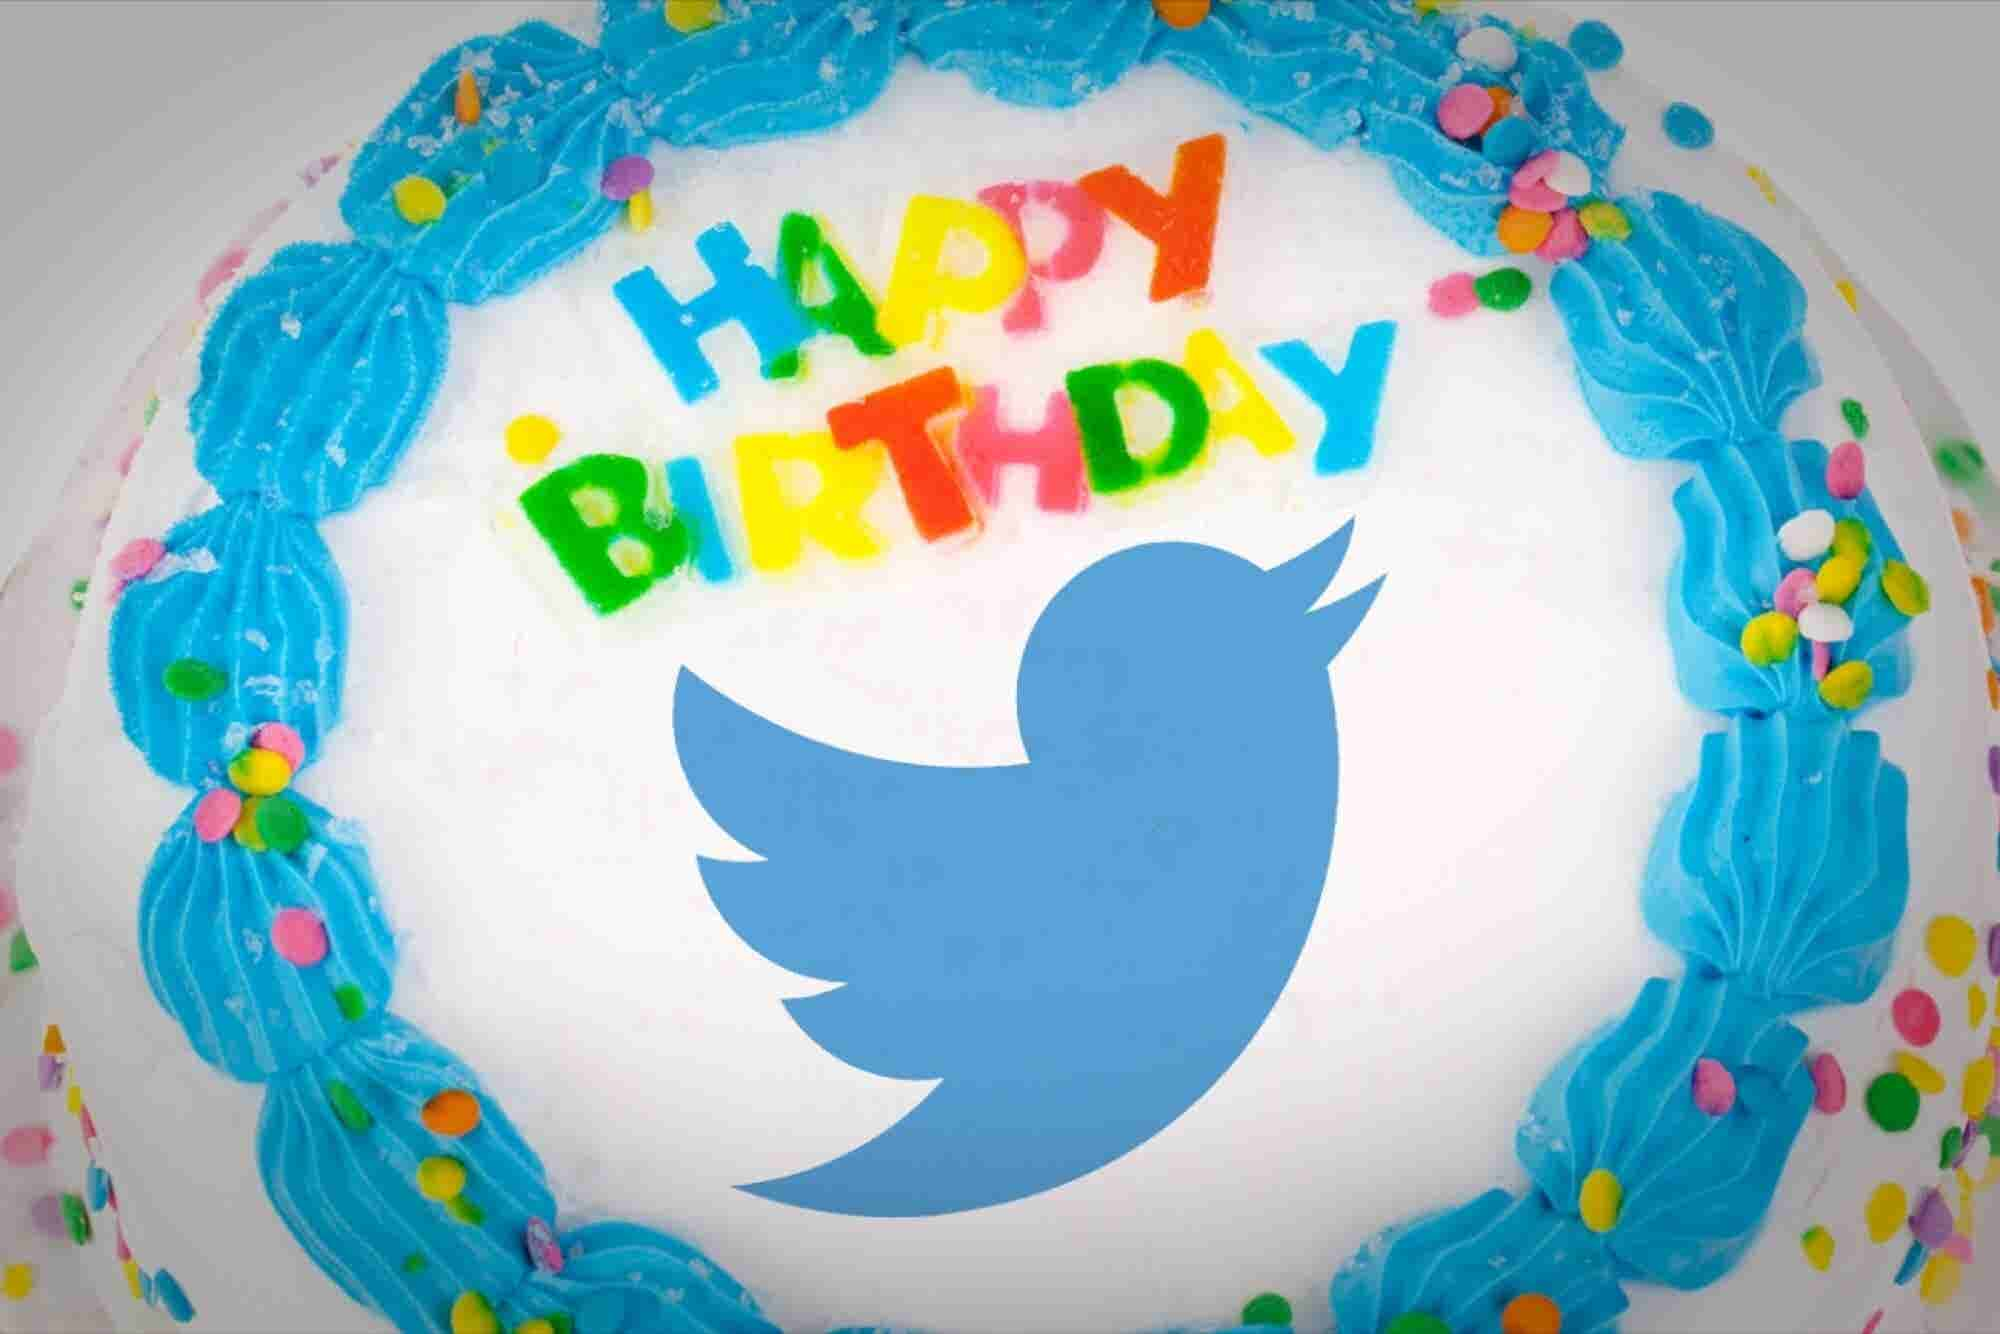 10 Interesting Facts About Twitter on its 10th Birthday